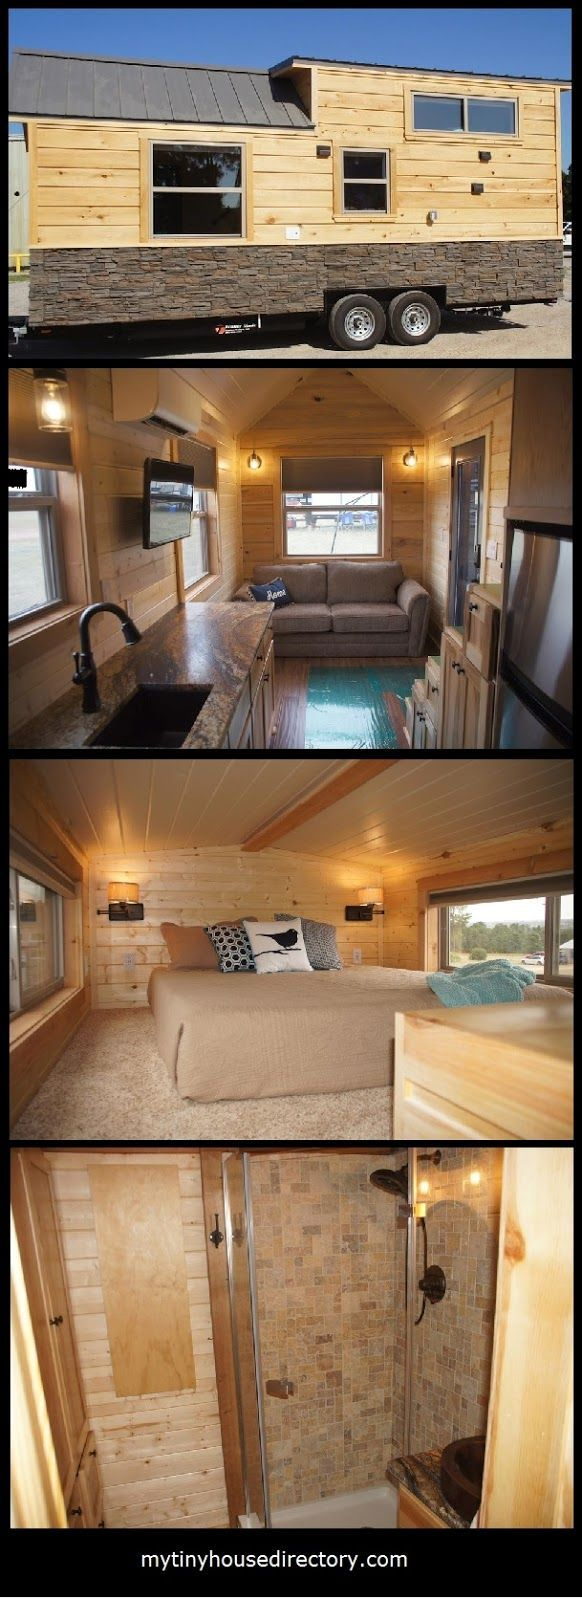 This Beautiful Tiny Home has Tuscany leather looking granite c ounter tops, hickory cabinets and copper sinks. It includes a solar powe...